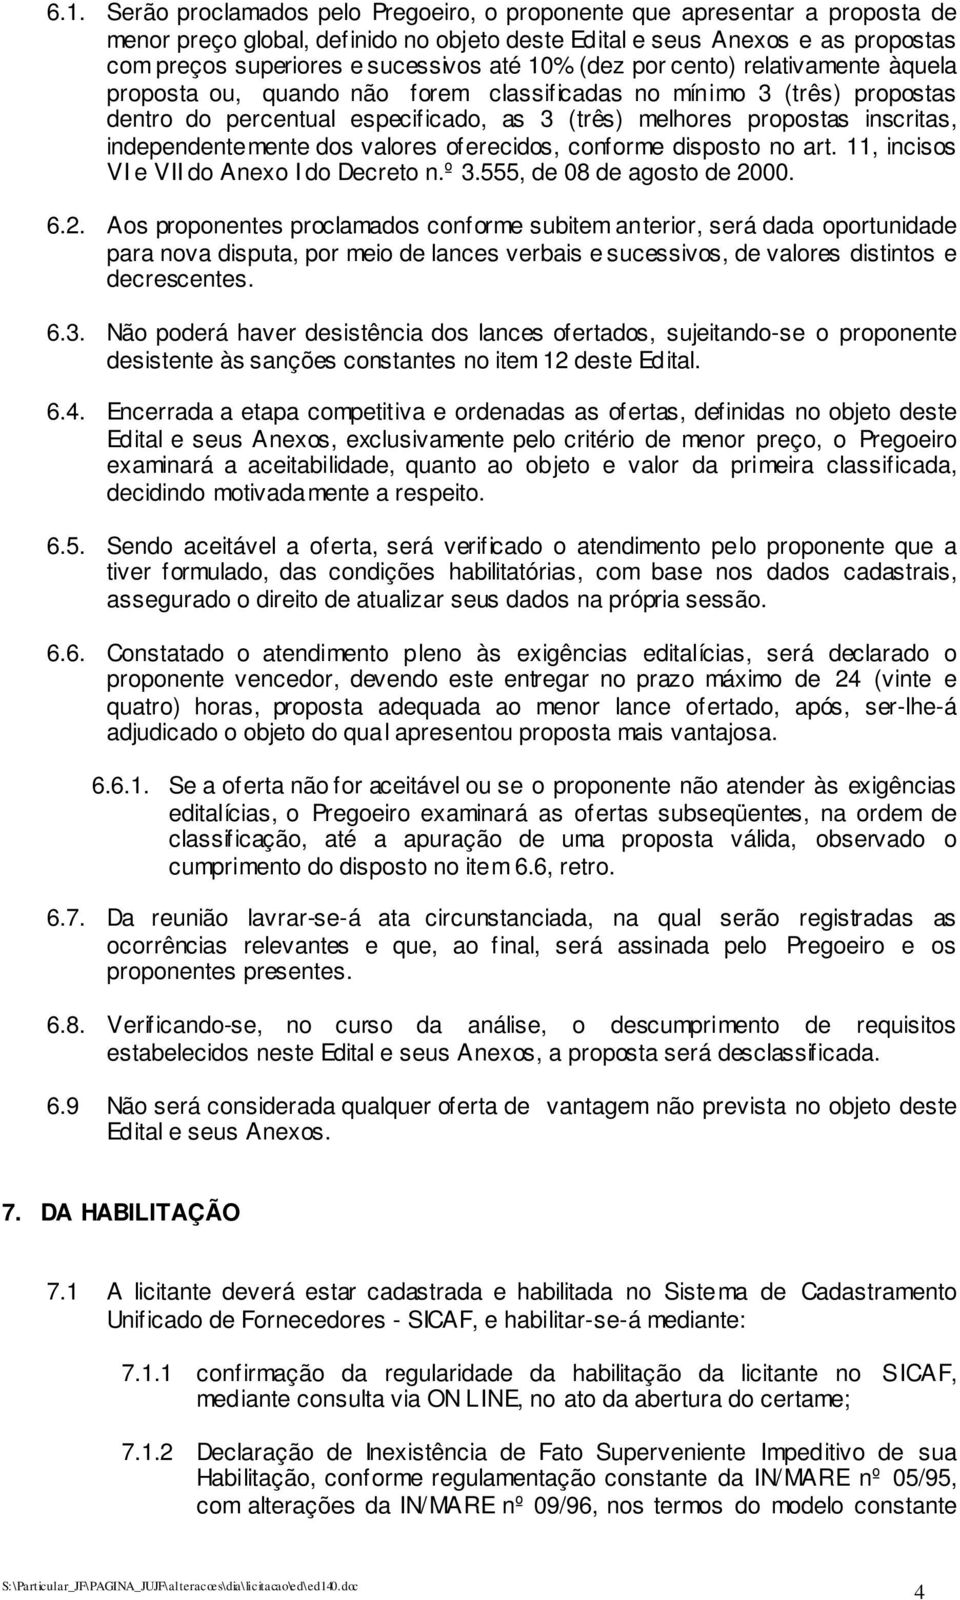 independentemente dos valores oferecidos, conforme disposto no art. 11, incisos VI e VII do Anexo I do Decreto n.º 3.555, de 08 de agosto de 20